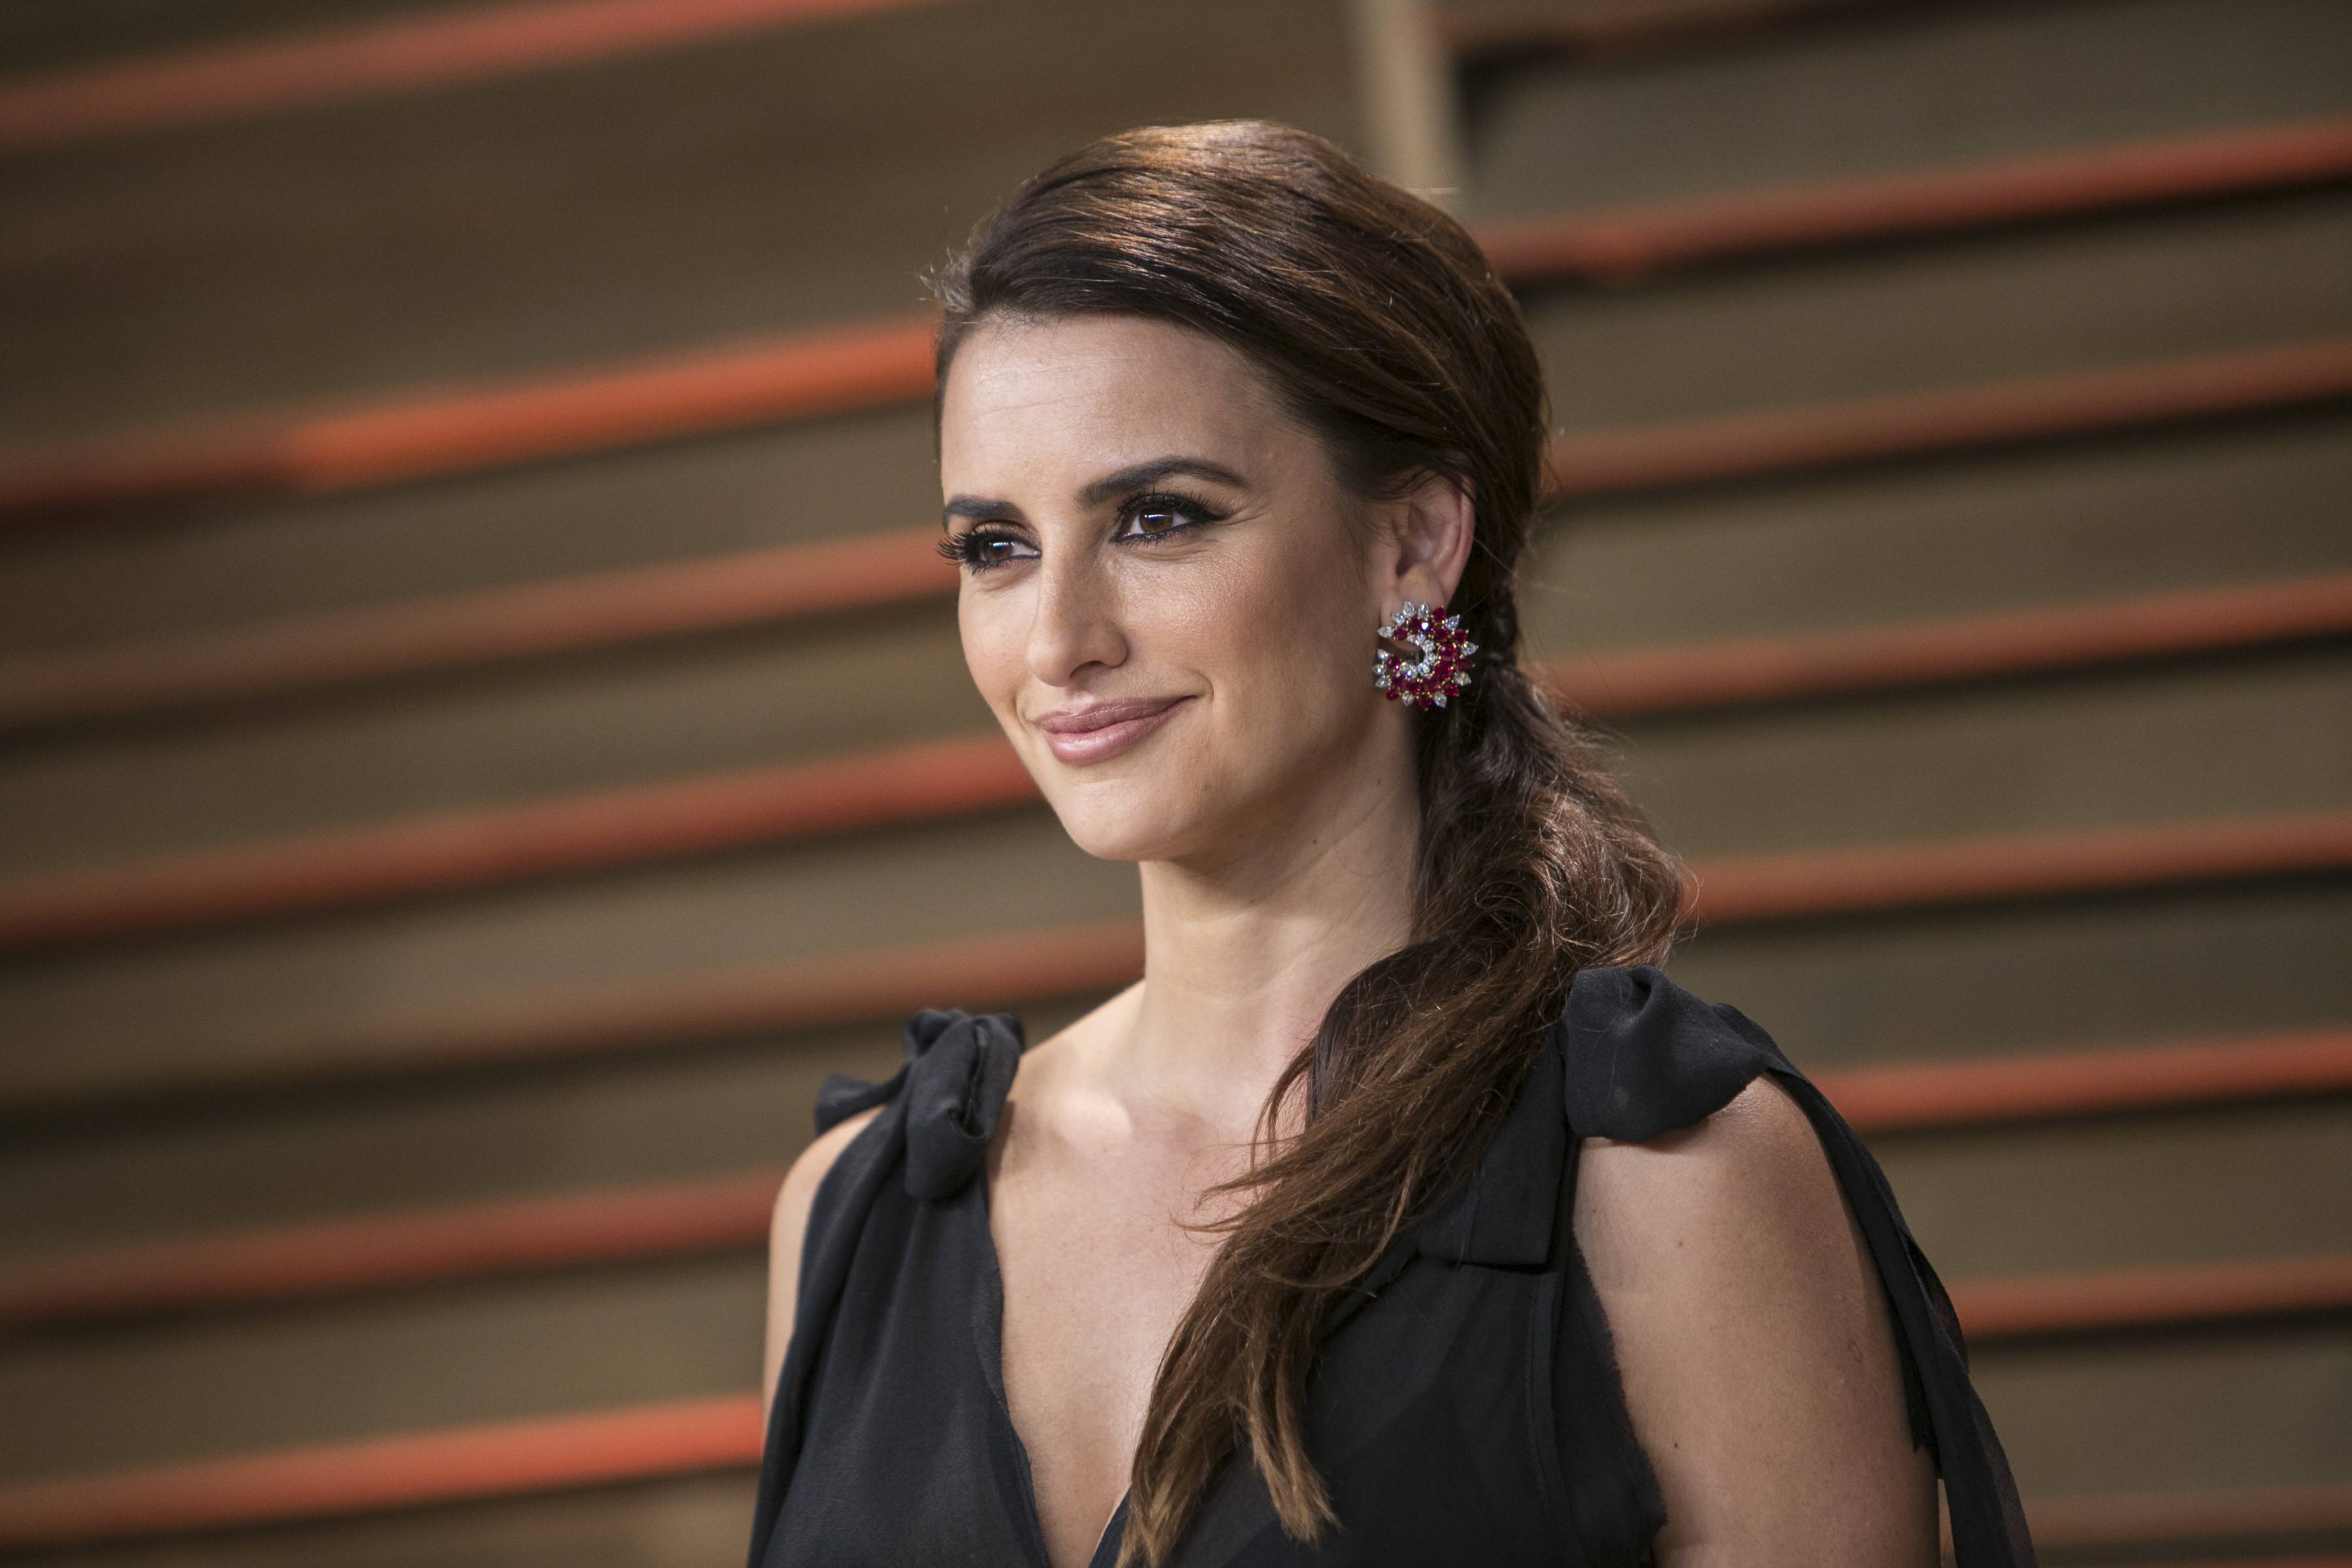 Penelope Cruz arrives at the 2014 Vanity Fair Oscar Party on March 2, 2014 in West Hollywood, California